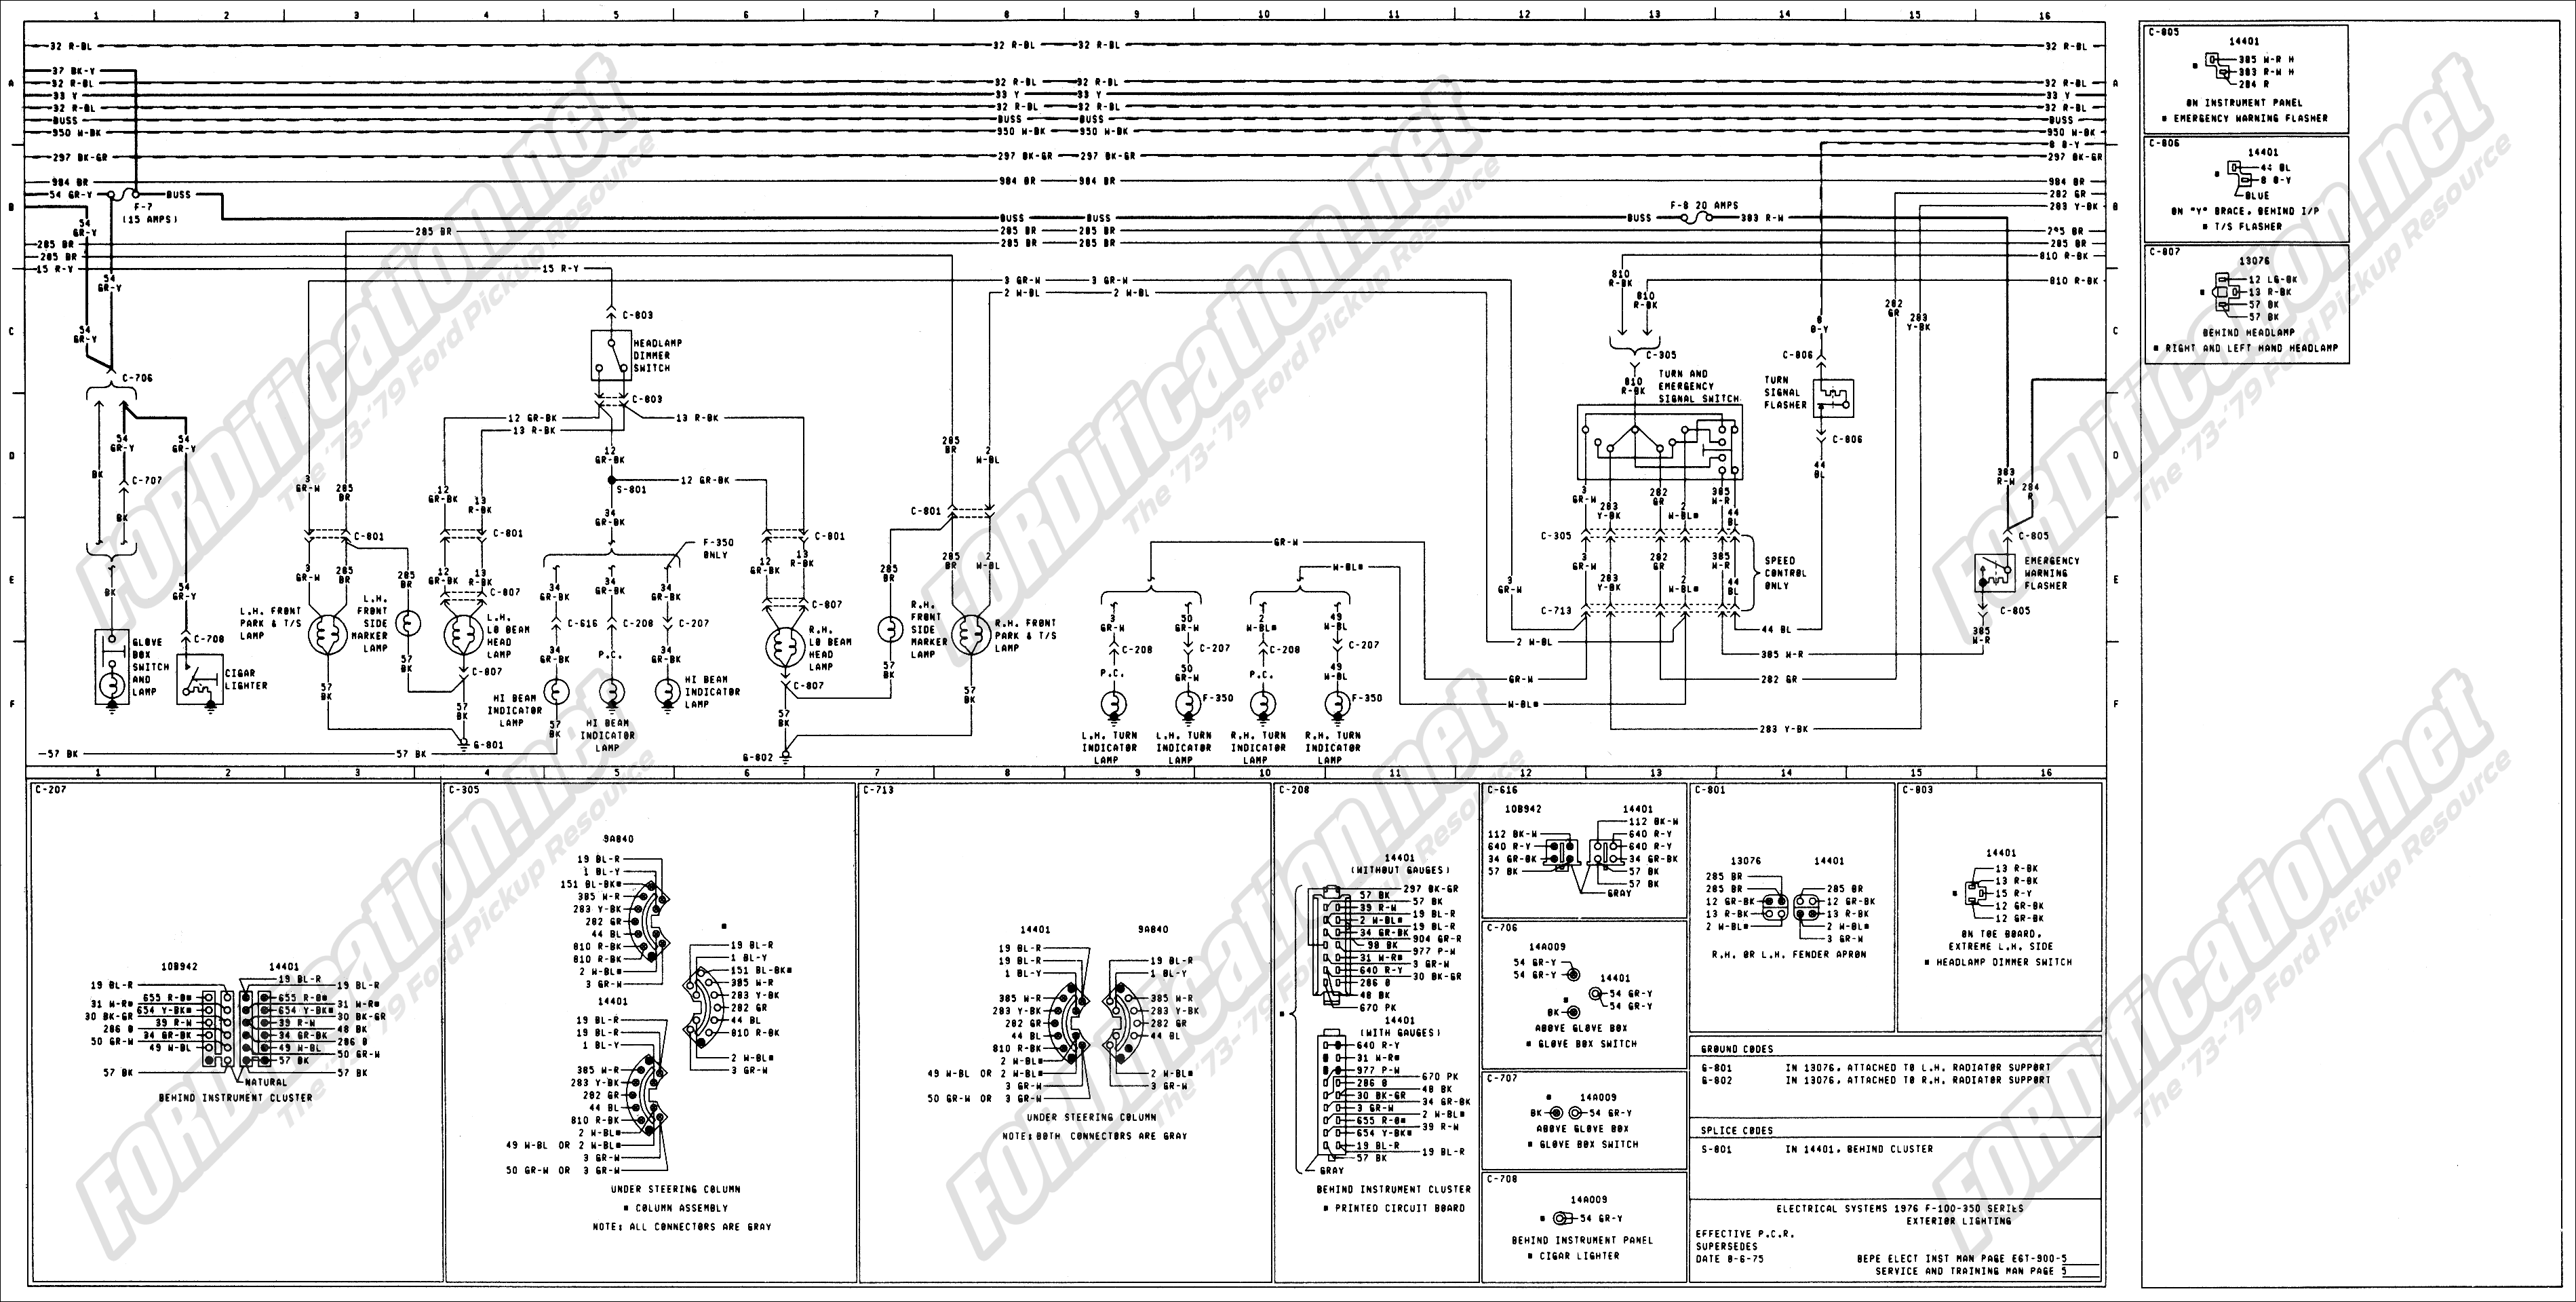 1973 1979 Ford Truck Wiring Diagrams & Schematics Fordification Net 77 Ford  Truck Wiring Diagram 77 Ford Wire Diagram